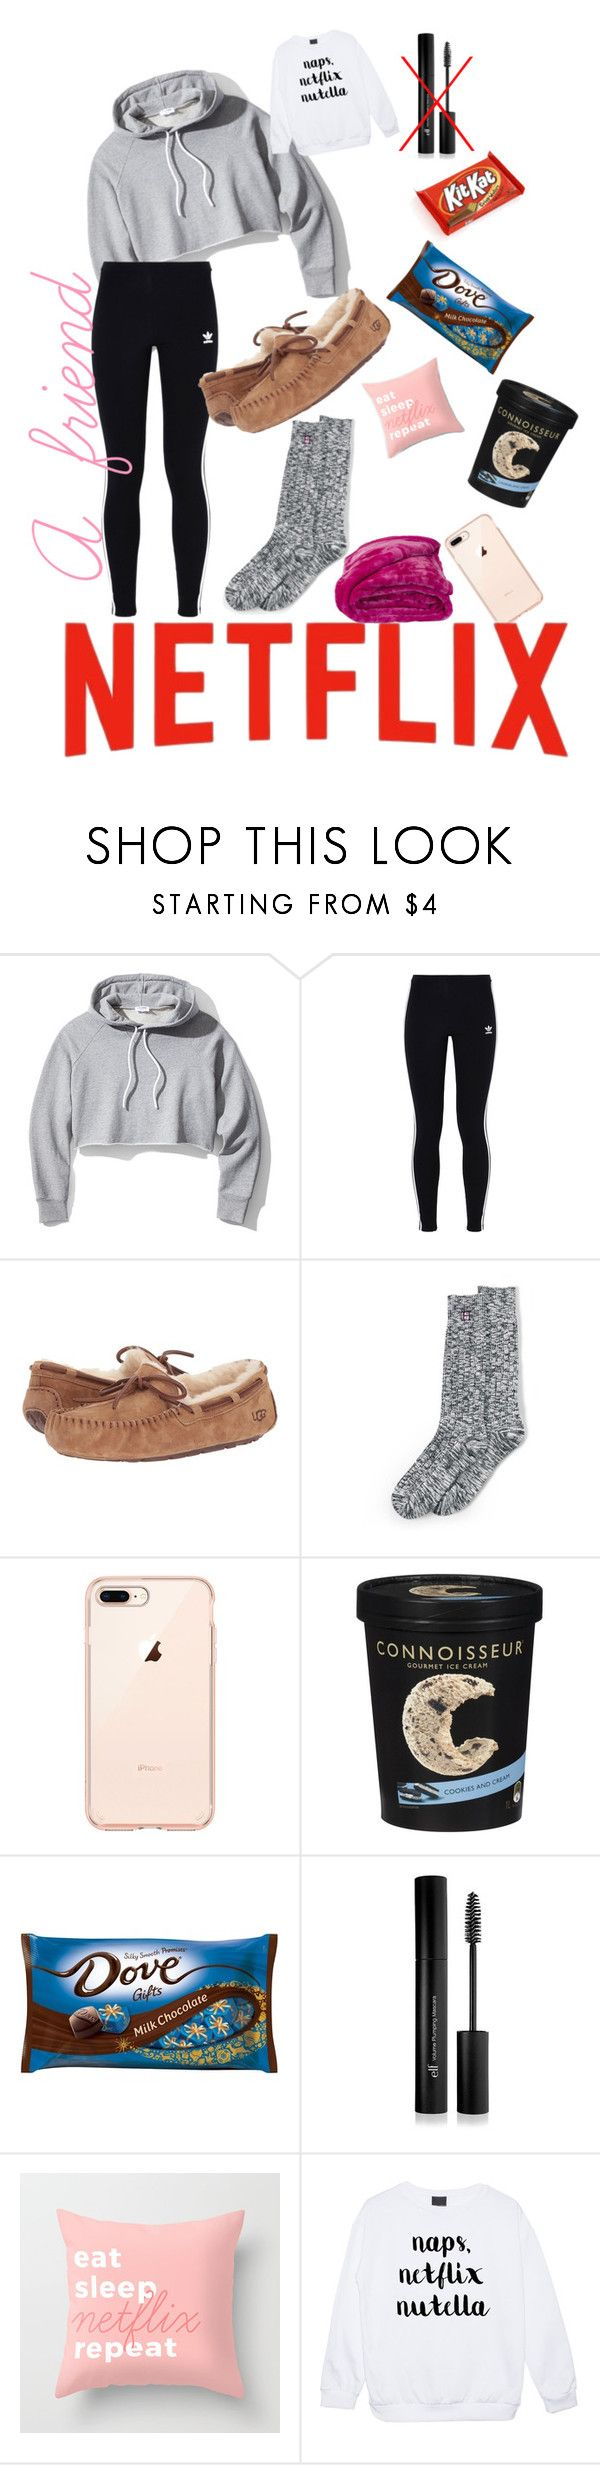 """Breakups Stink "" by mbf0dancer0clemson ❤ liked on Polyvore featuring Frame, adidas Originals, UGG Australia, Lands' End and Forever 21"